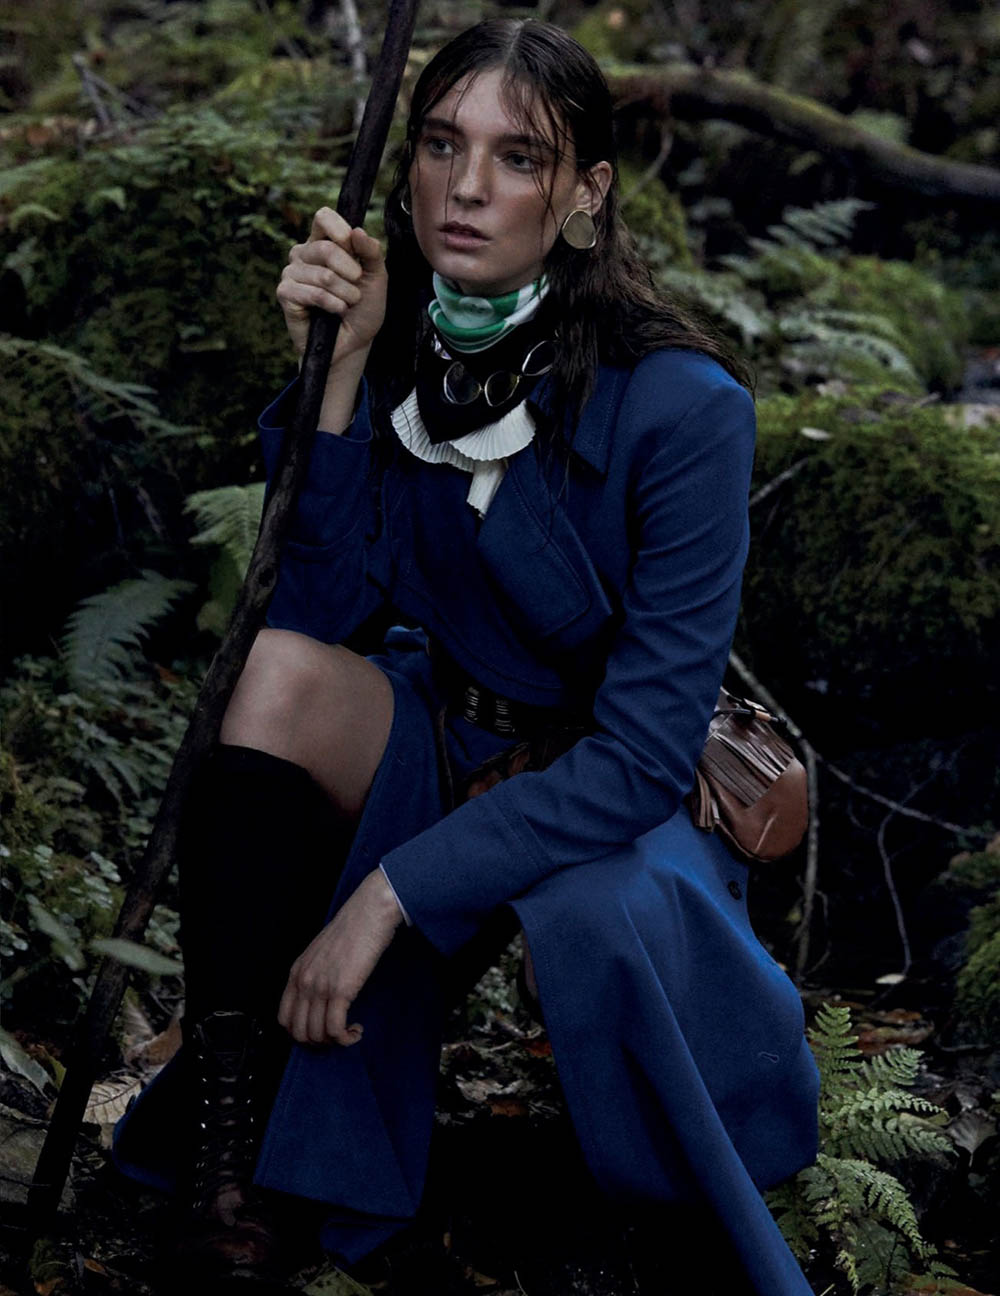 Ansley Gulielmi by Alvaro Beamud for Vogue Spain February 2020